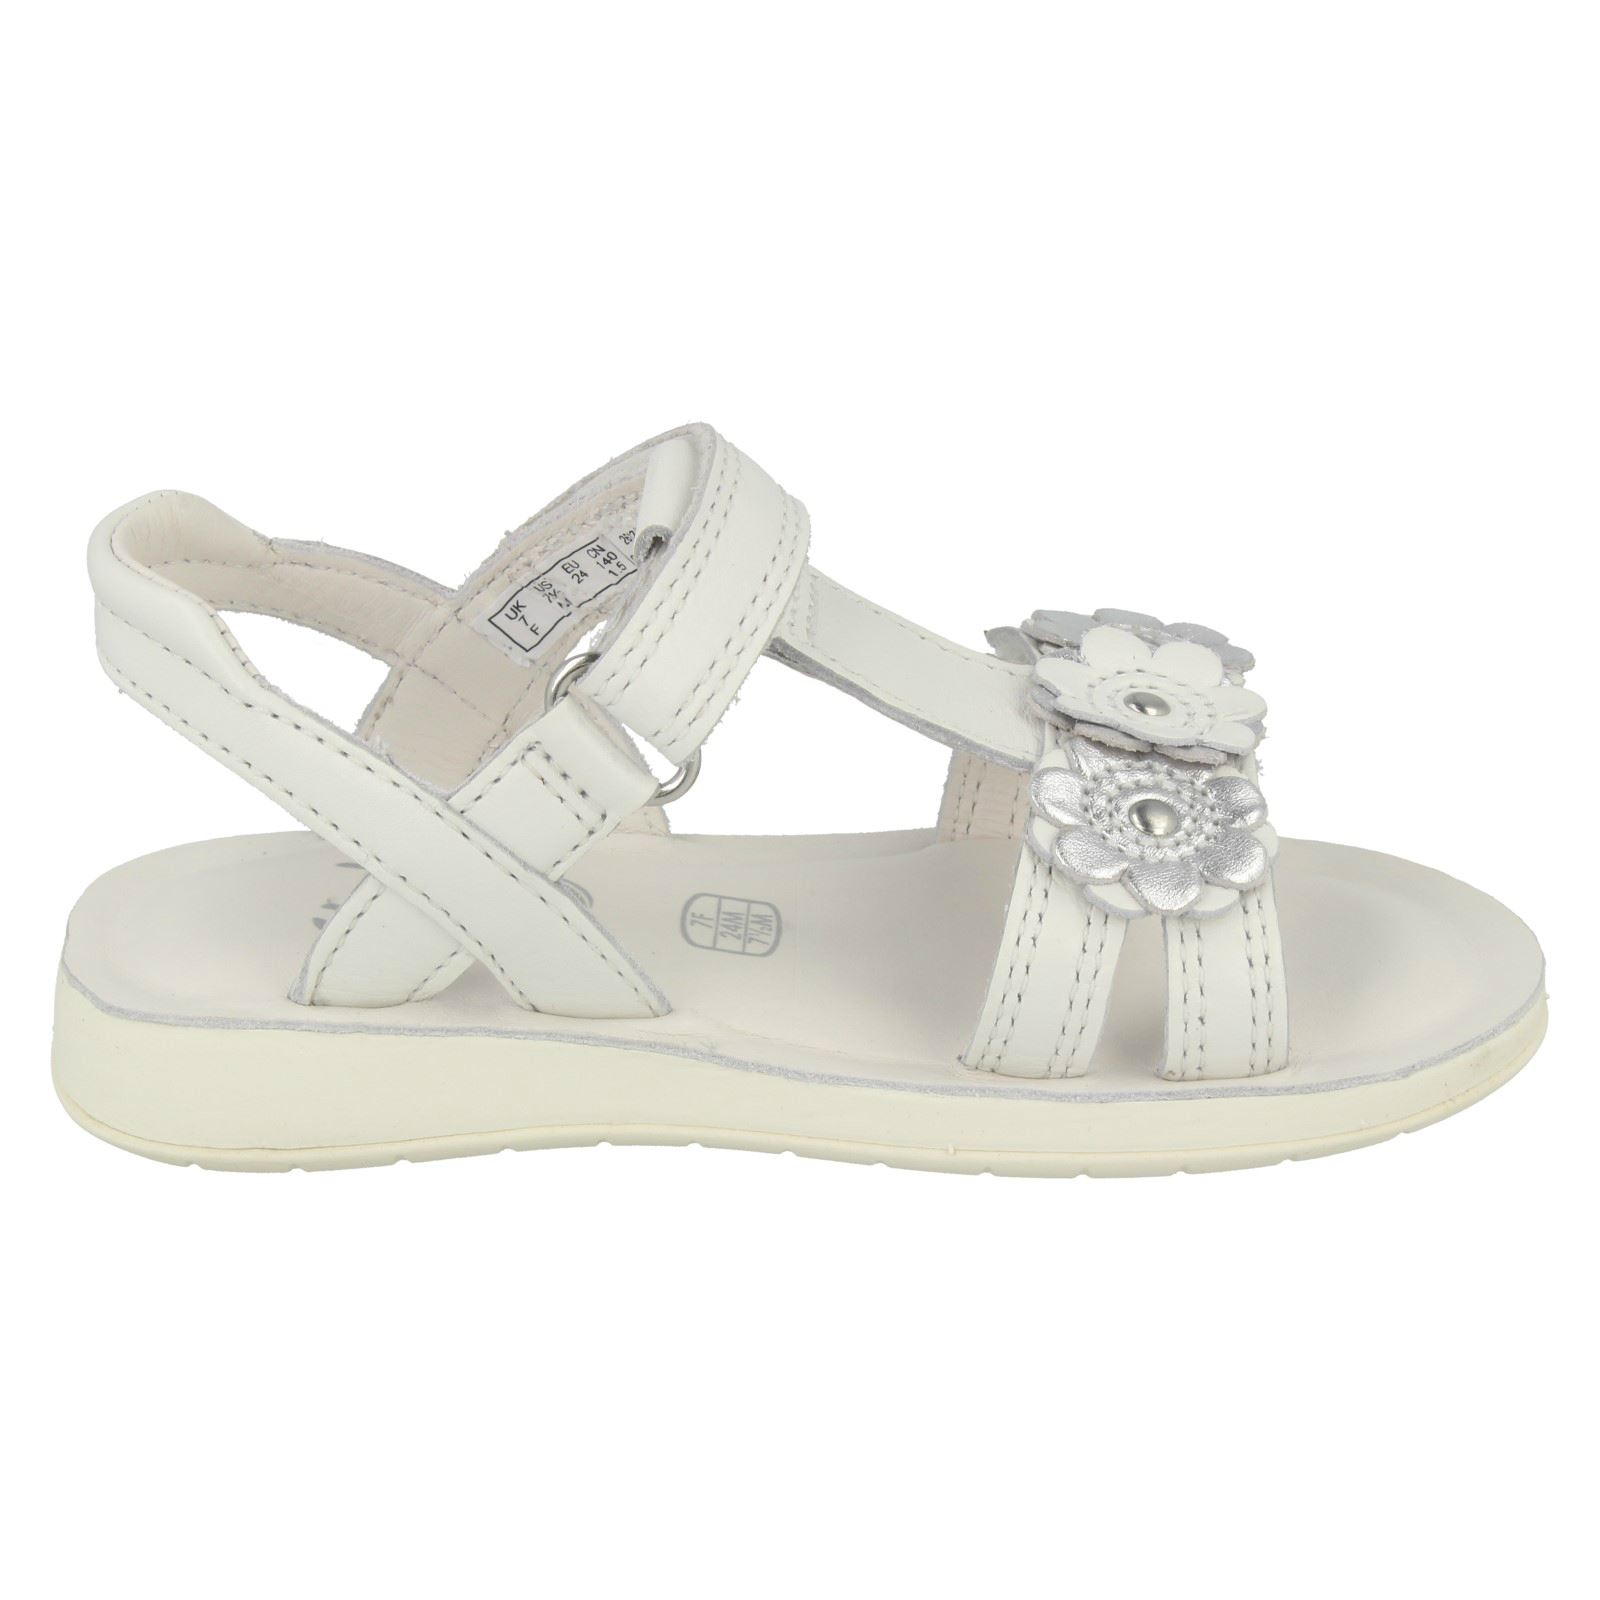 Clarks Girls Gladiator Style Sandals With Flower Detail Sea Sally